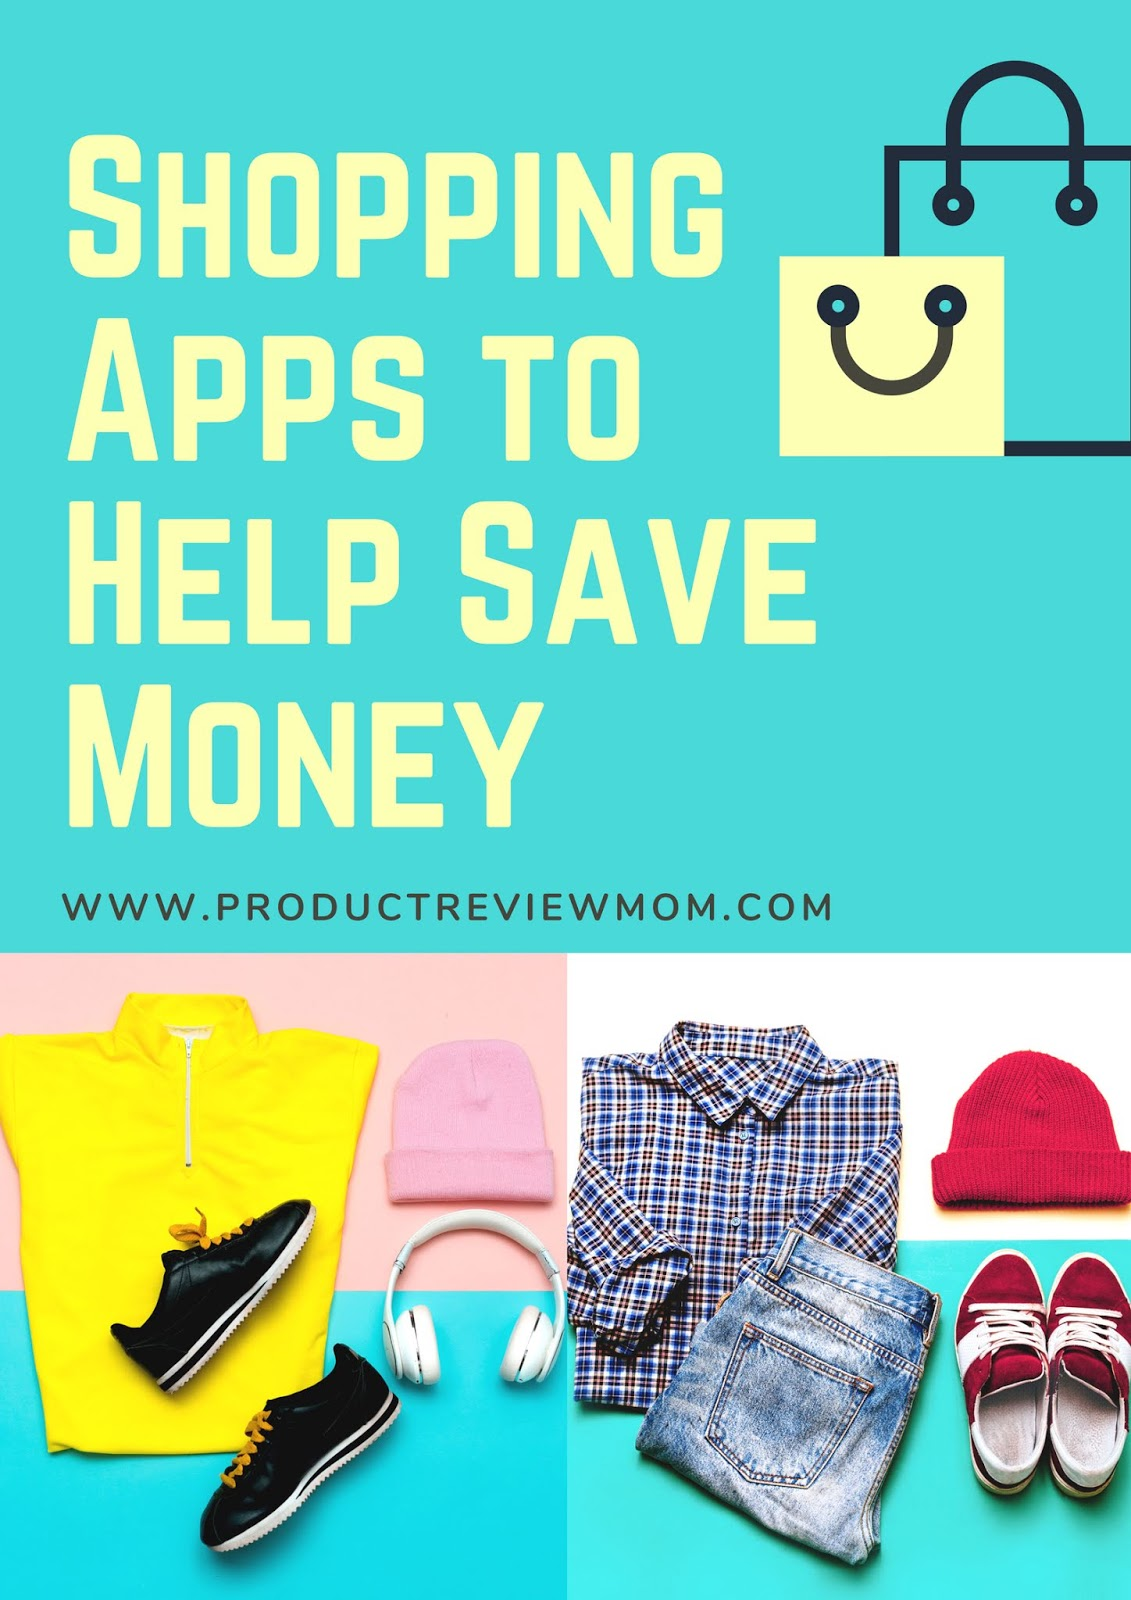 Shopping Apps to Help Save Money  via  www.productreviewmom.com